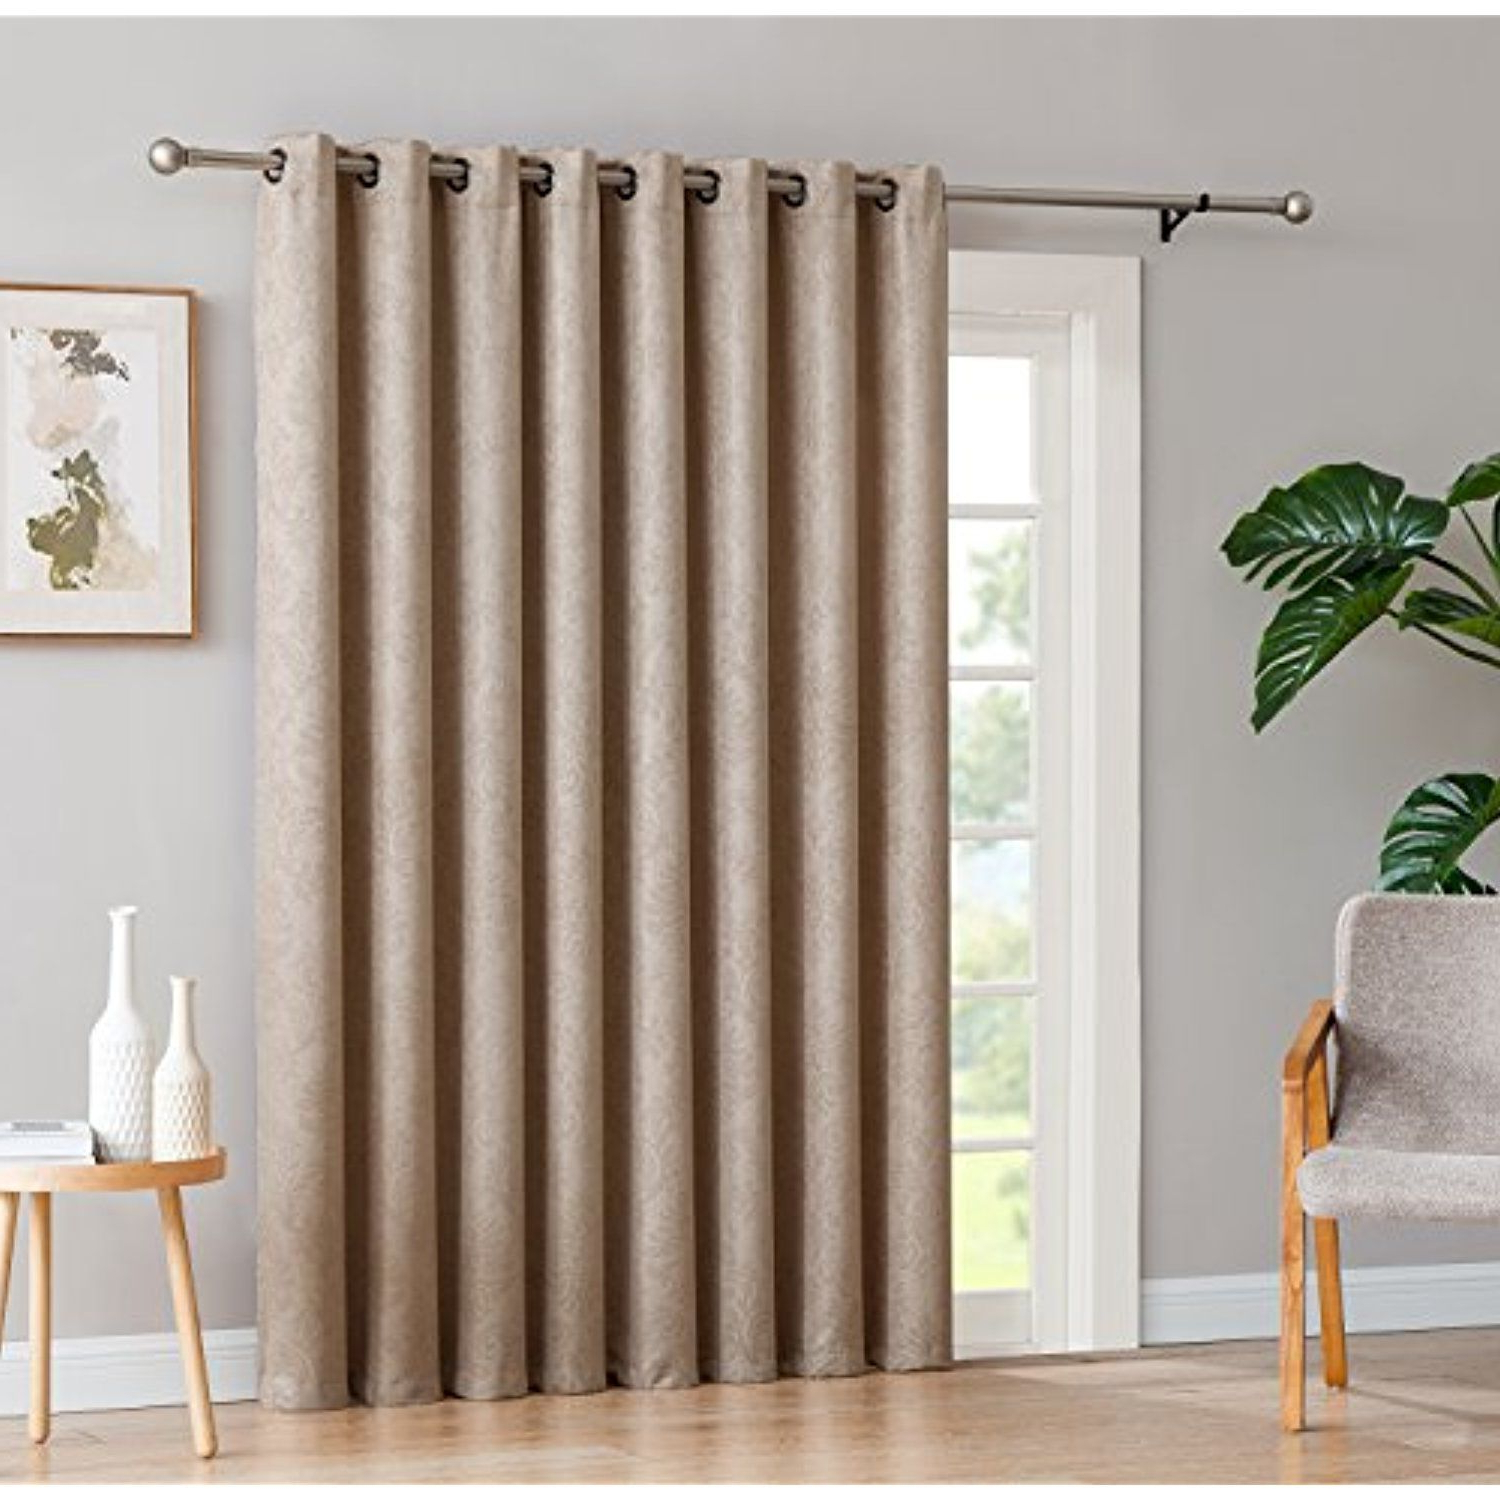 Evelyn – 1 Patio Extra Wide Curtain Panel With 16 Grommets For Most Popular Embossed Thermal Weaved Blackout Grommet Drapery Curtains (Gallery 7 of 20)